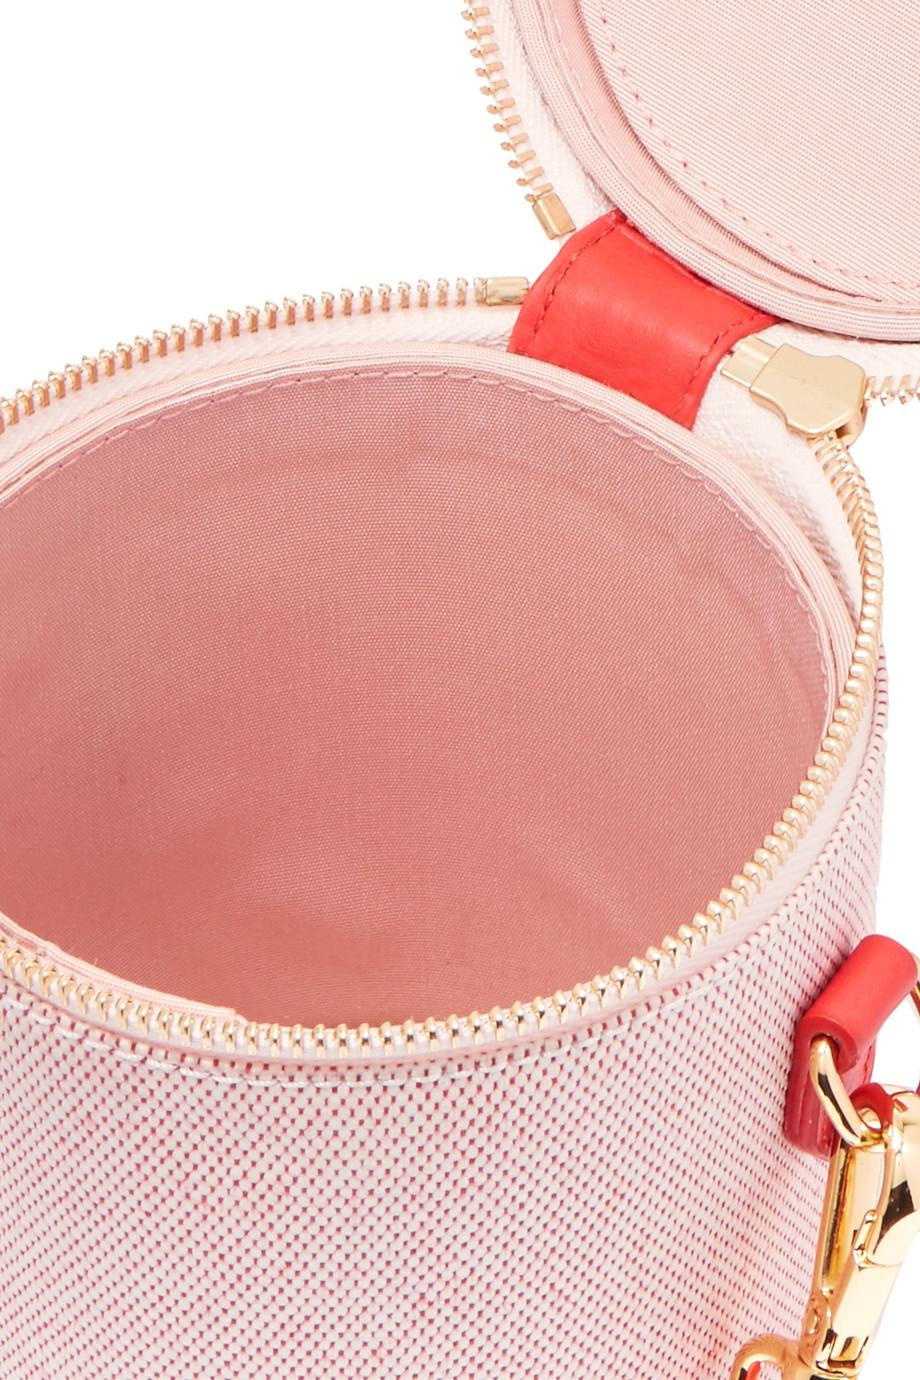 Shop Offer For Sale Crossbody Capsule Leather-trimmed Canvas Shoulder Bag - Red Paravel Clearance Cheap Real Free Shipping Outlet New Arrival Cheap Online Choice Online XnwcXBL6